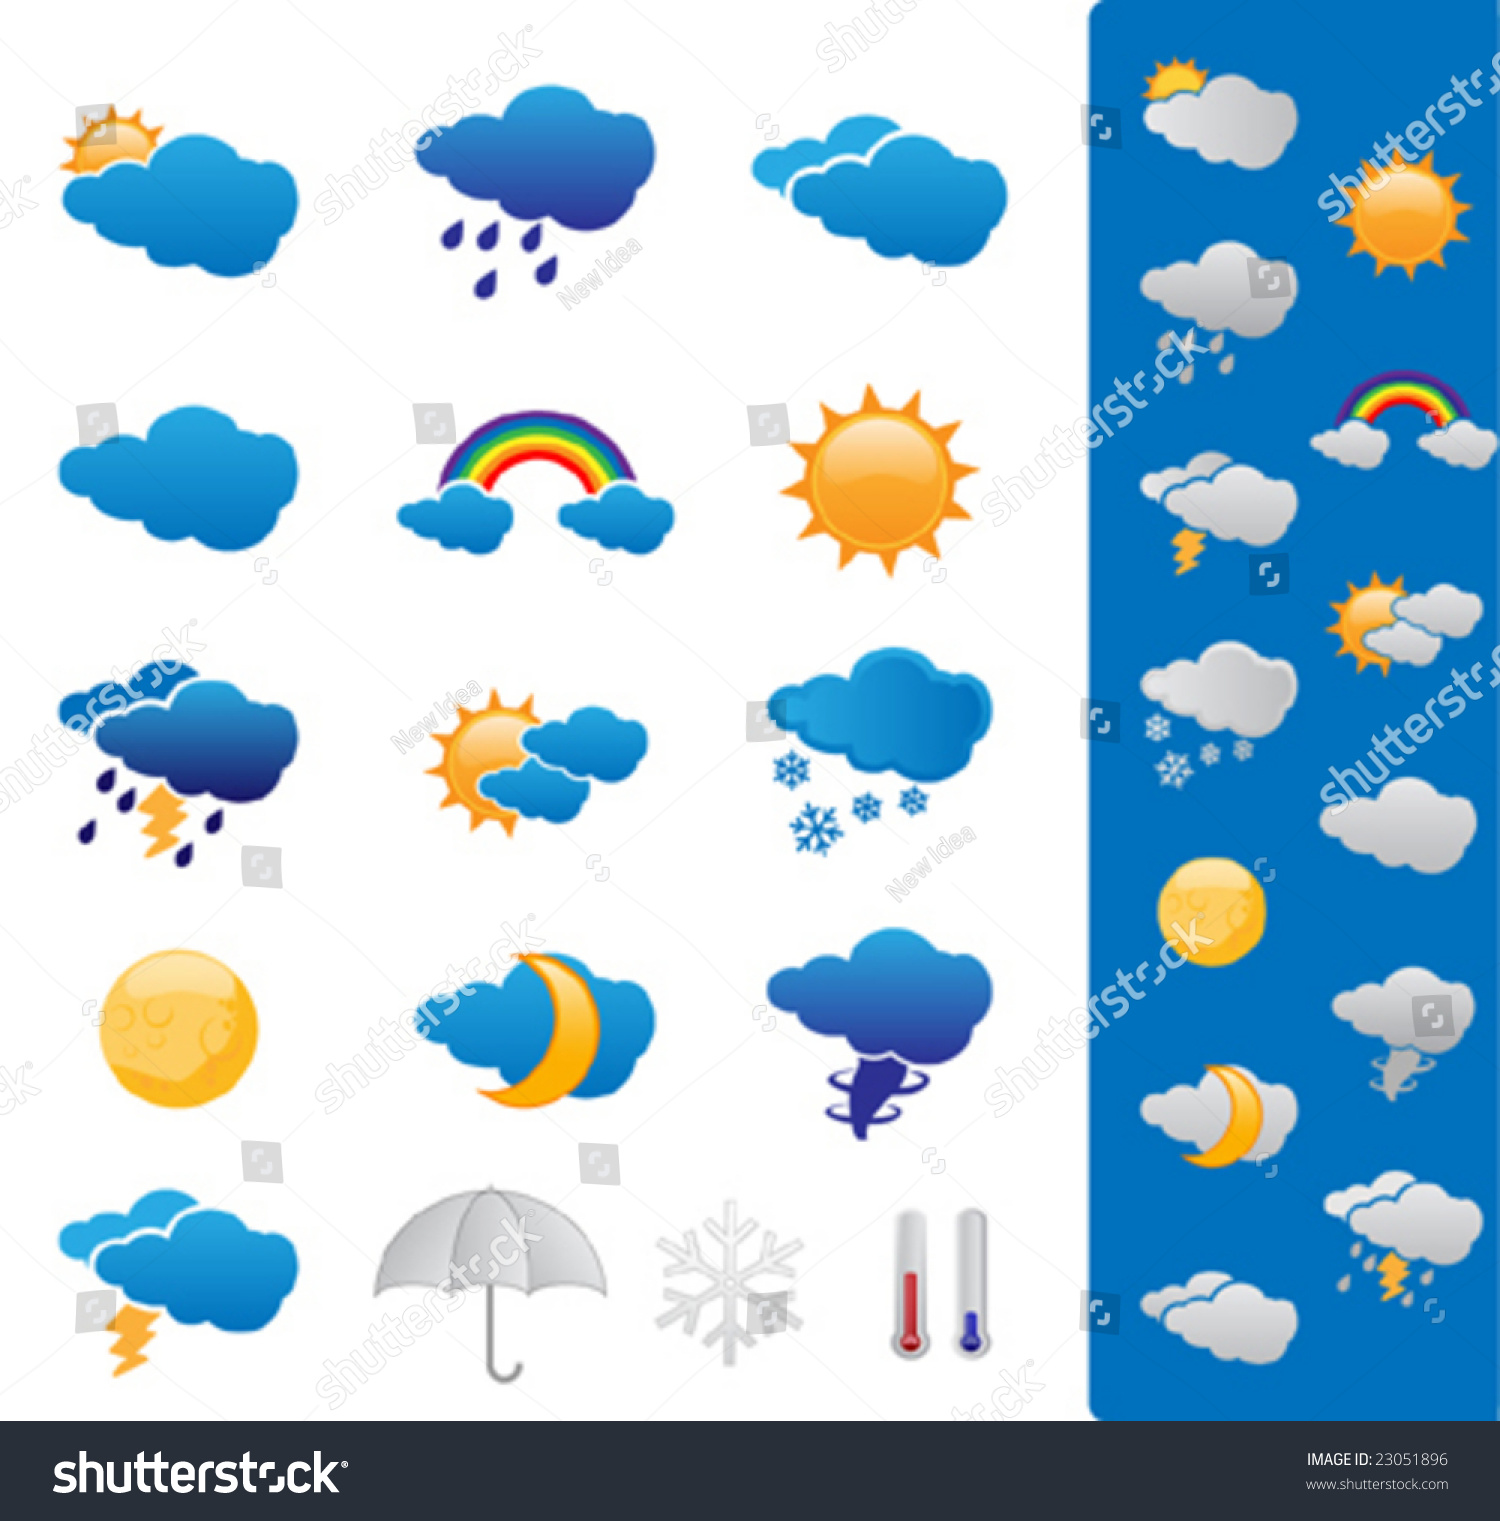 Meteocons Is A Set Of Weather Icons It Containing Icons Available In Psd Csh Eps Svg